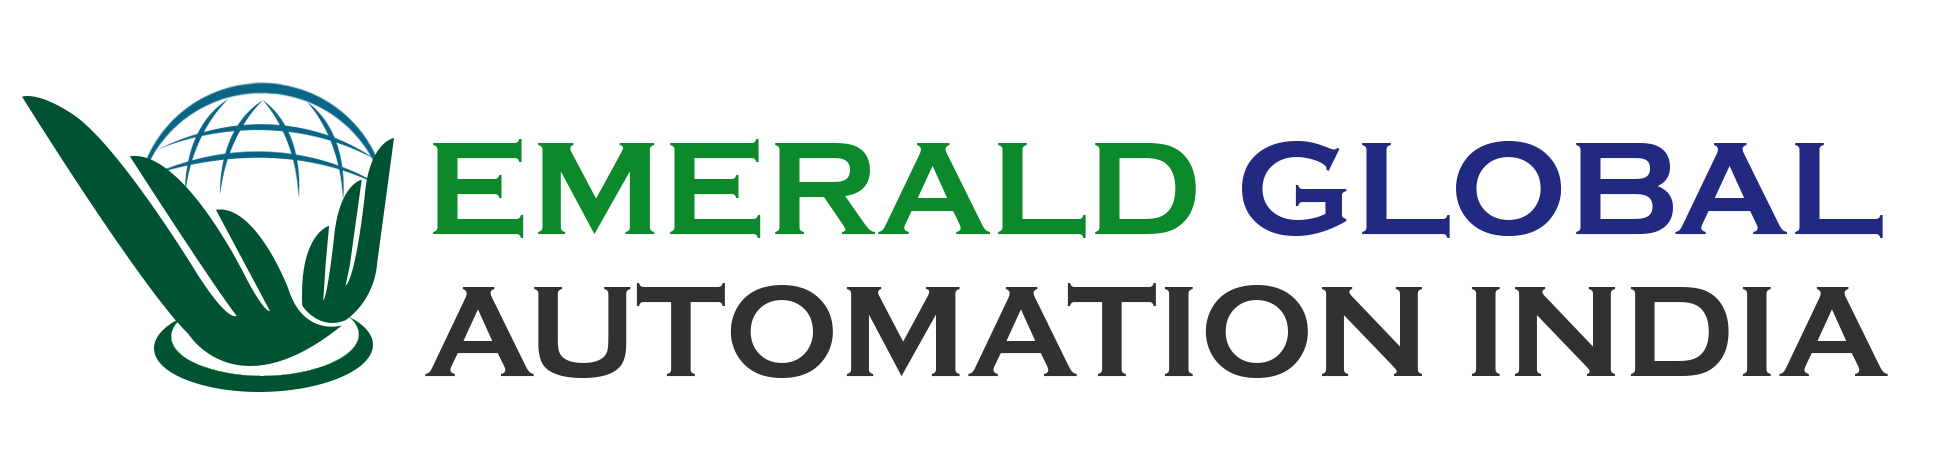 Emerald Global Autamation India